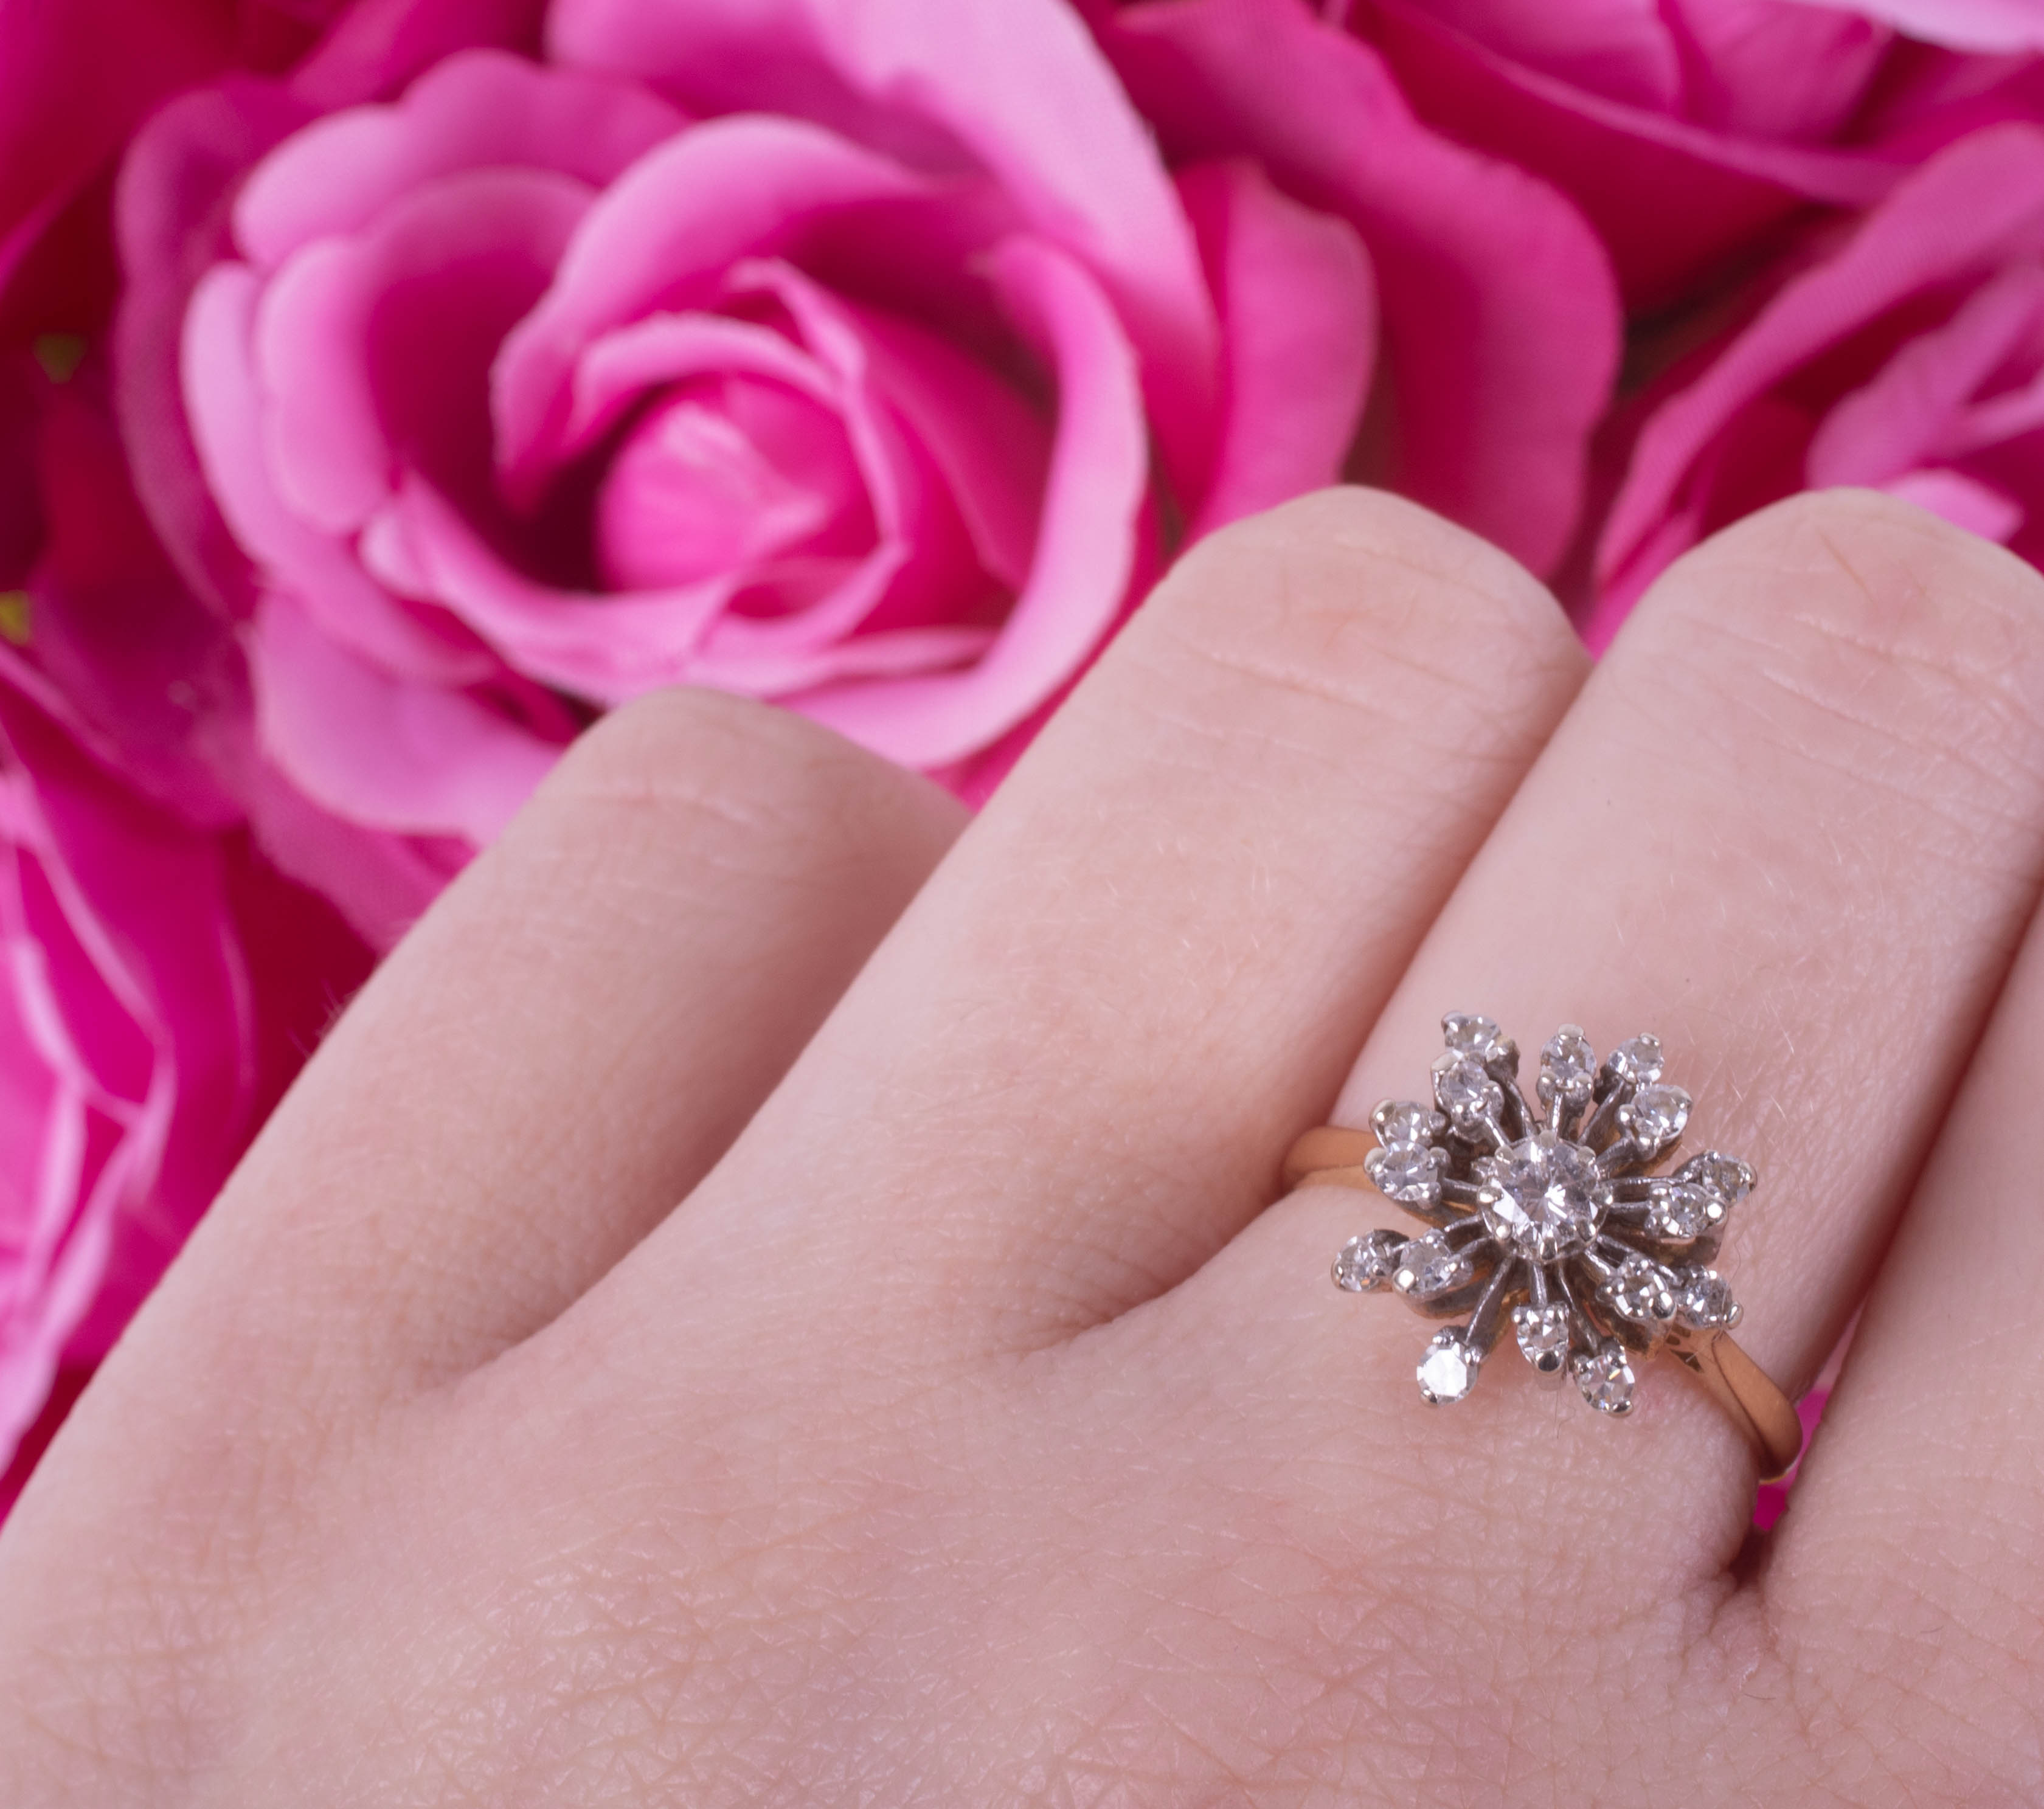 An 18ct diamond cluster ring set in yellow gold, size N. - Image 3 of 3